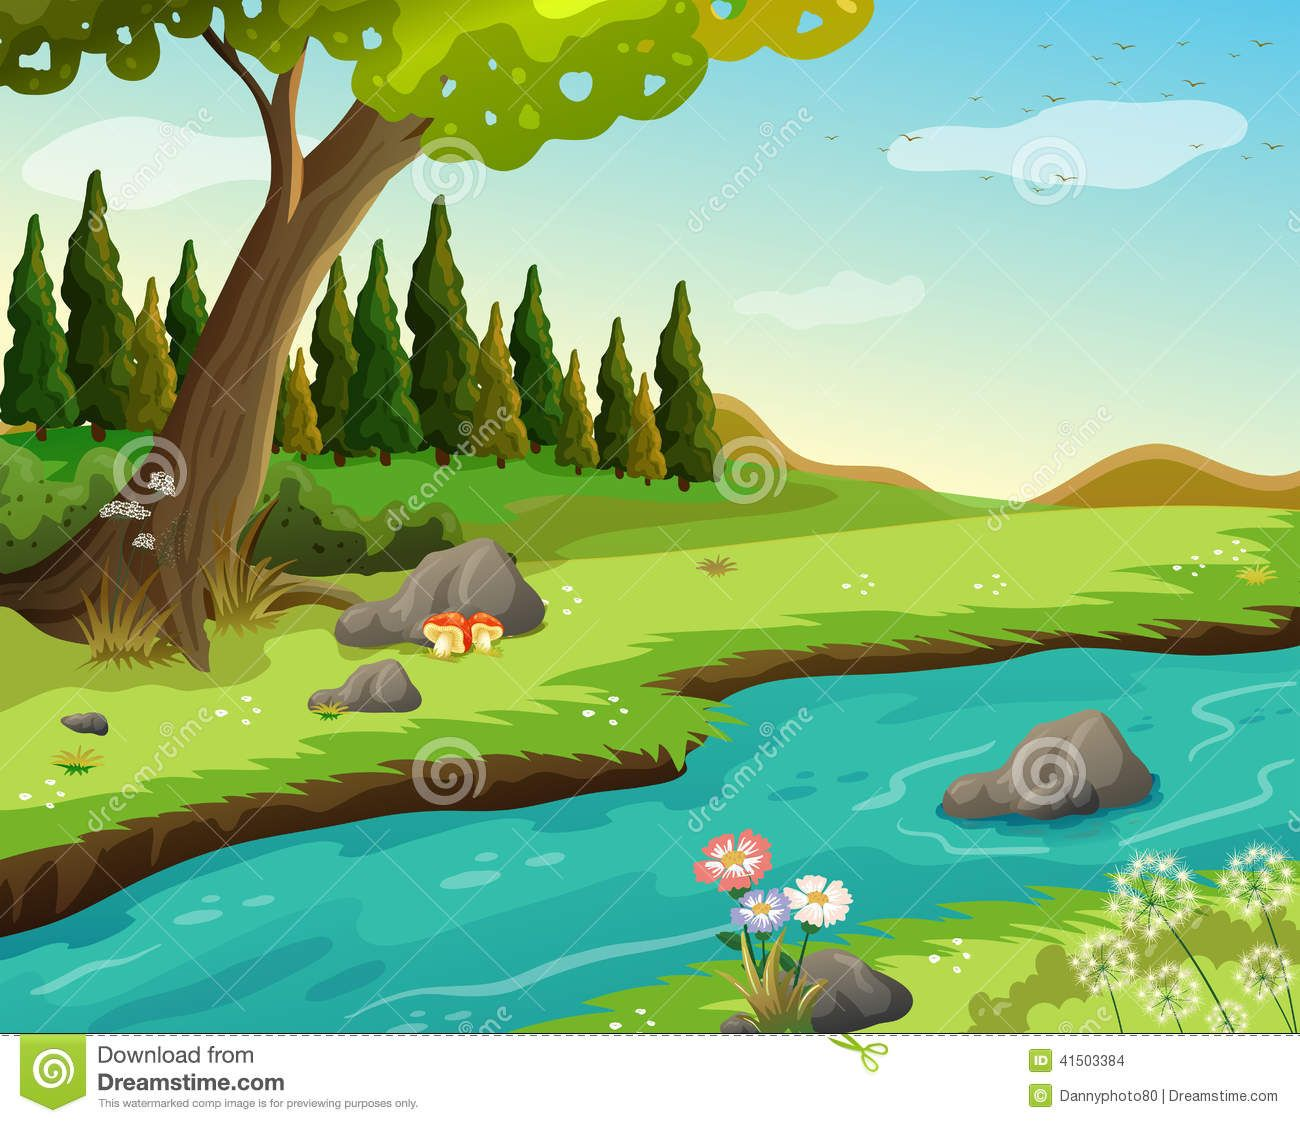 Lake clipart river bank. Pin by brooklynn on